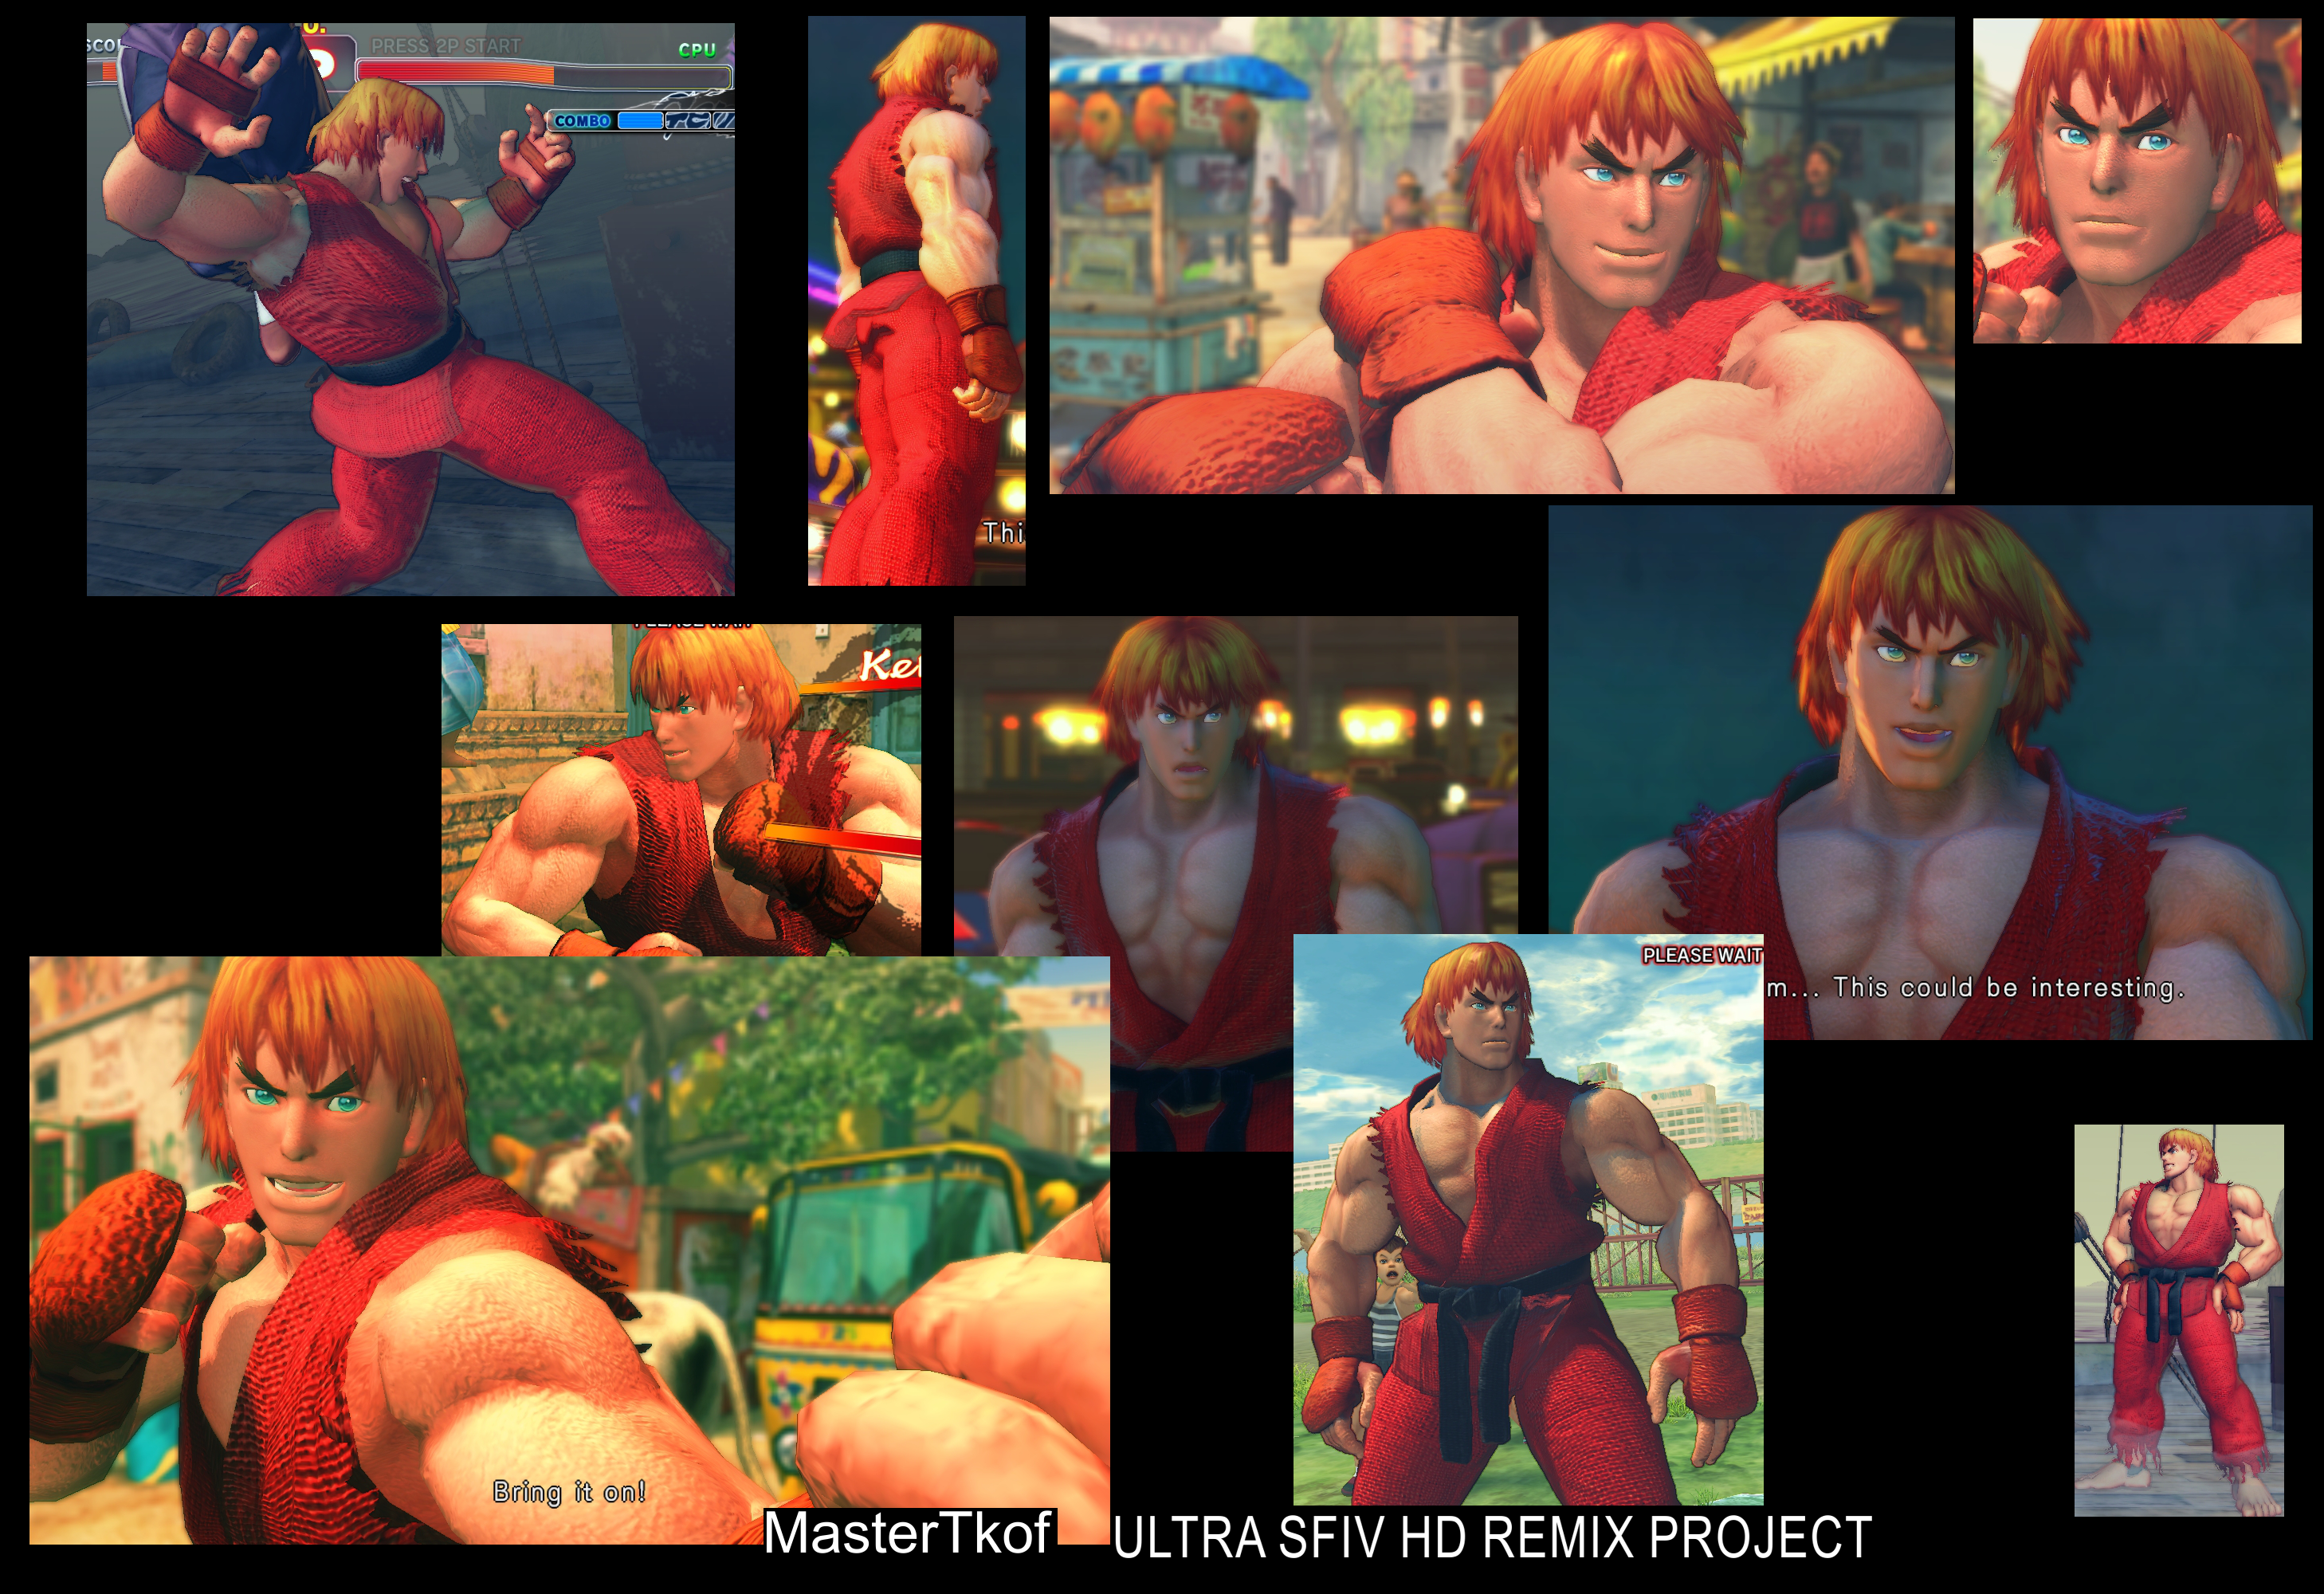 hd_ken_ultra_street_fighter_iv_hd_remix_by_mastertkof-d9s5jpp.png